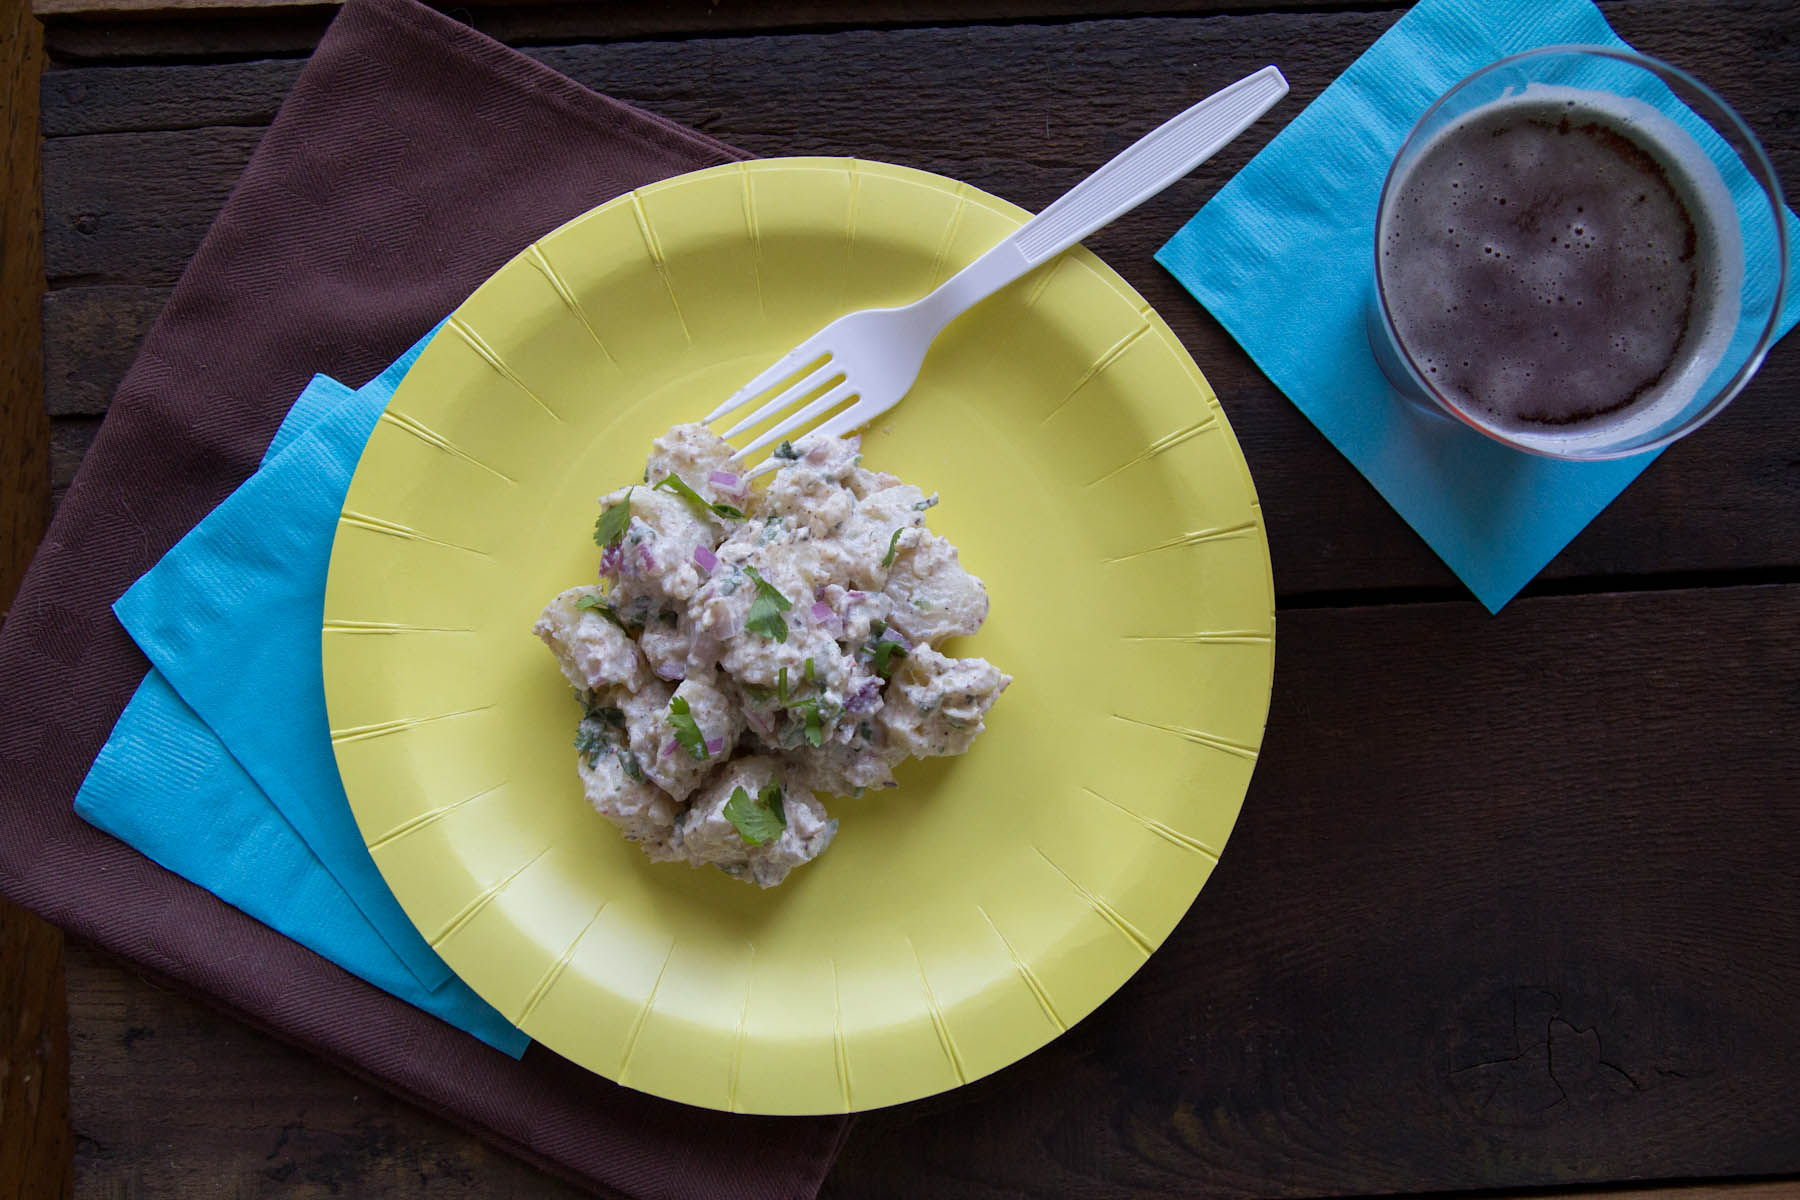 Healthy picnic food indian style cumin ginger potato salad indian style cumin ginger potato salad by indiaphilefo forumfinder Images